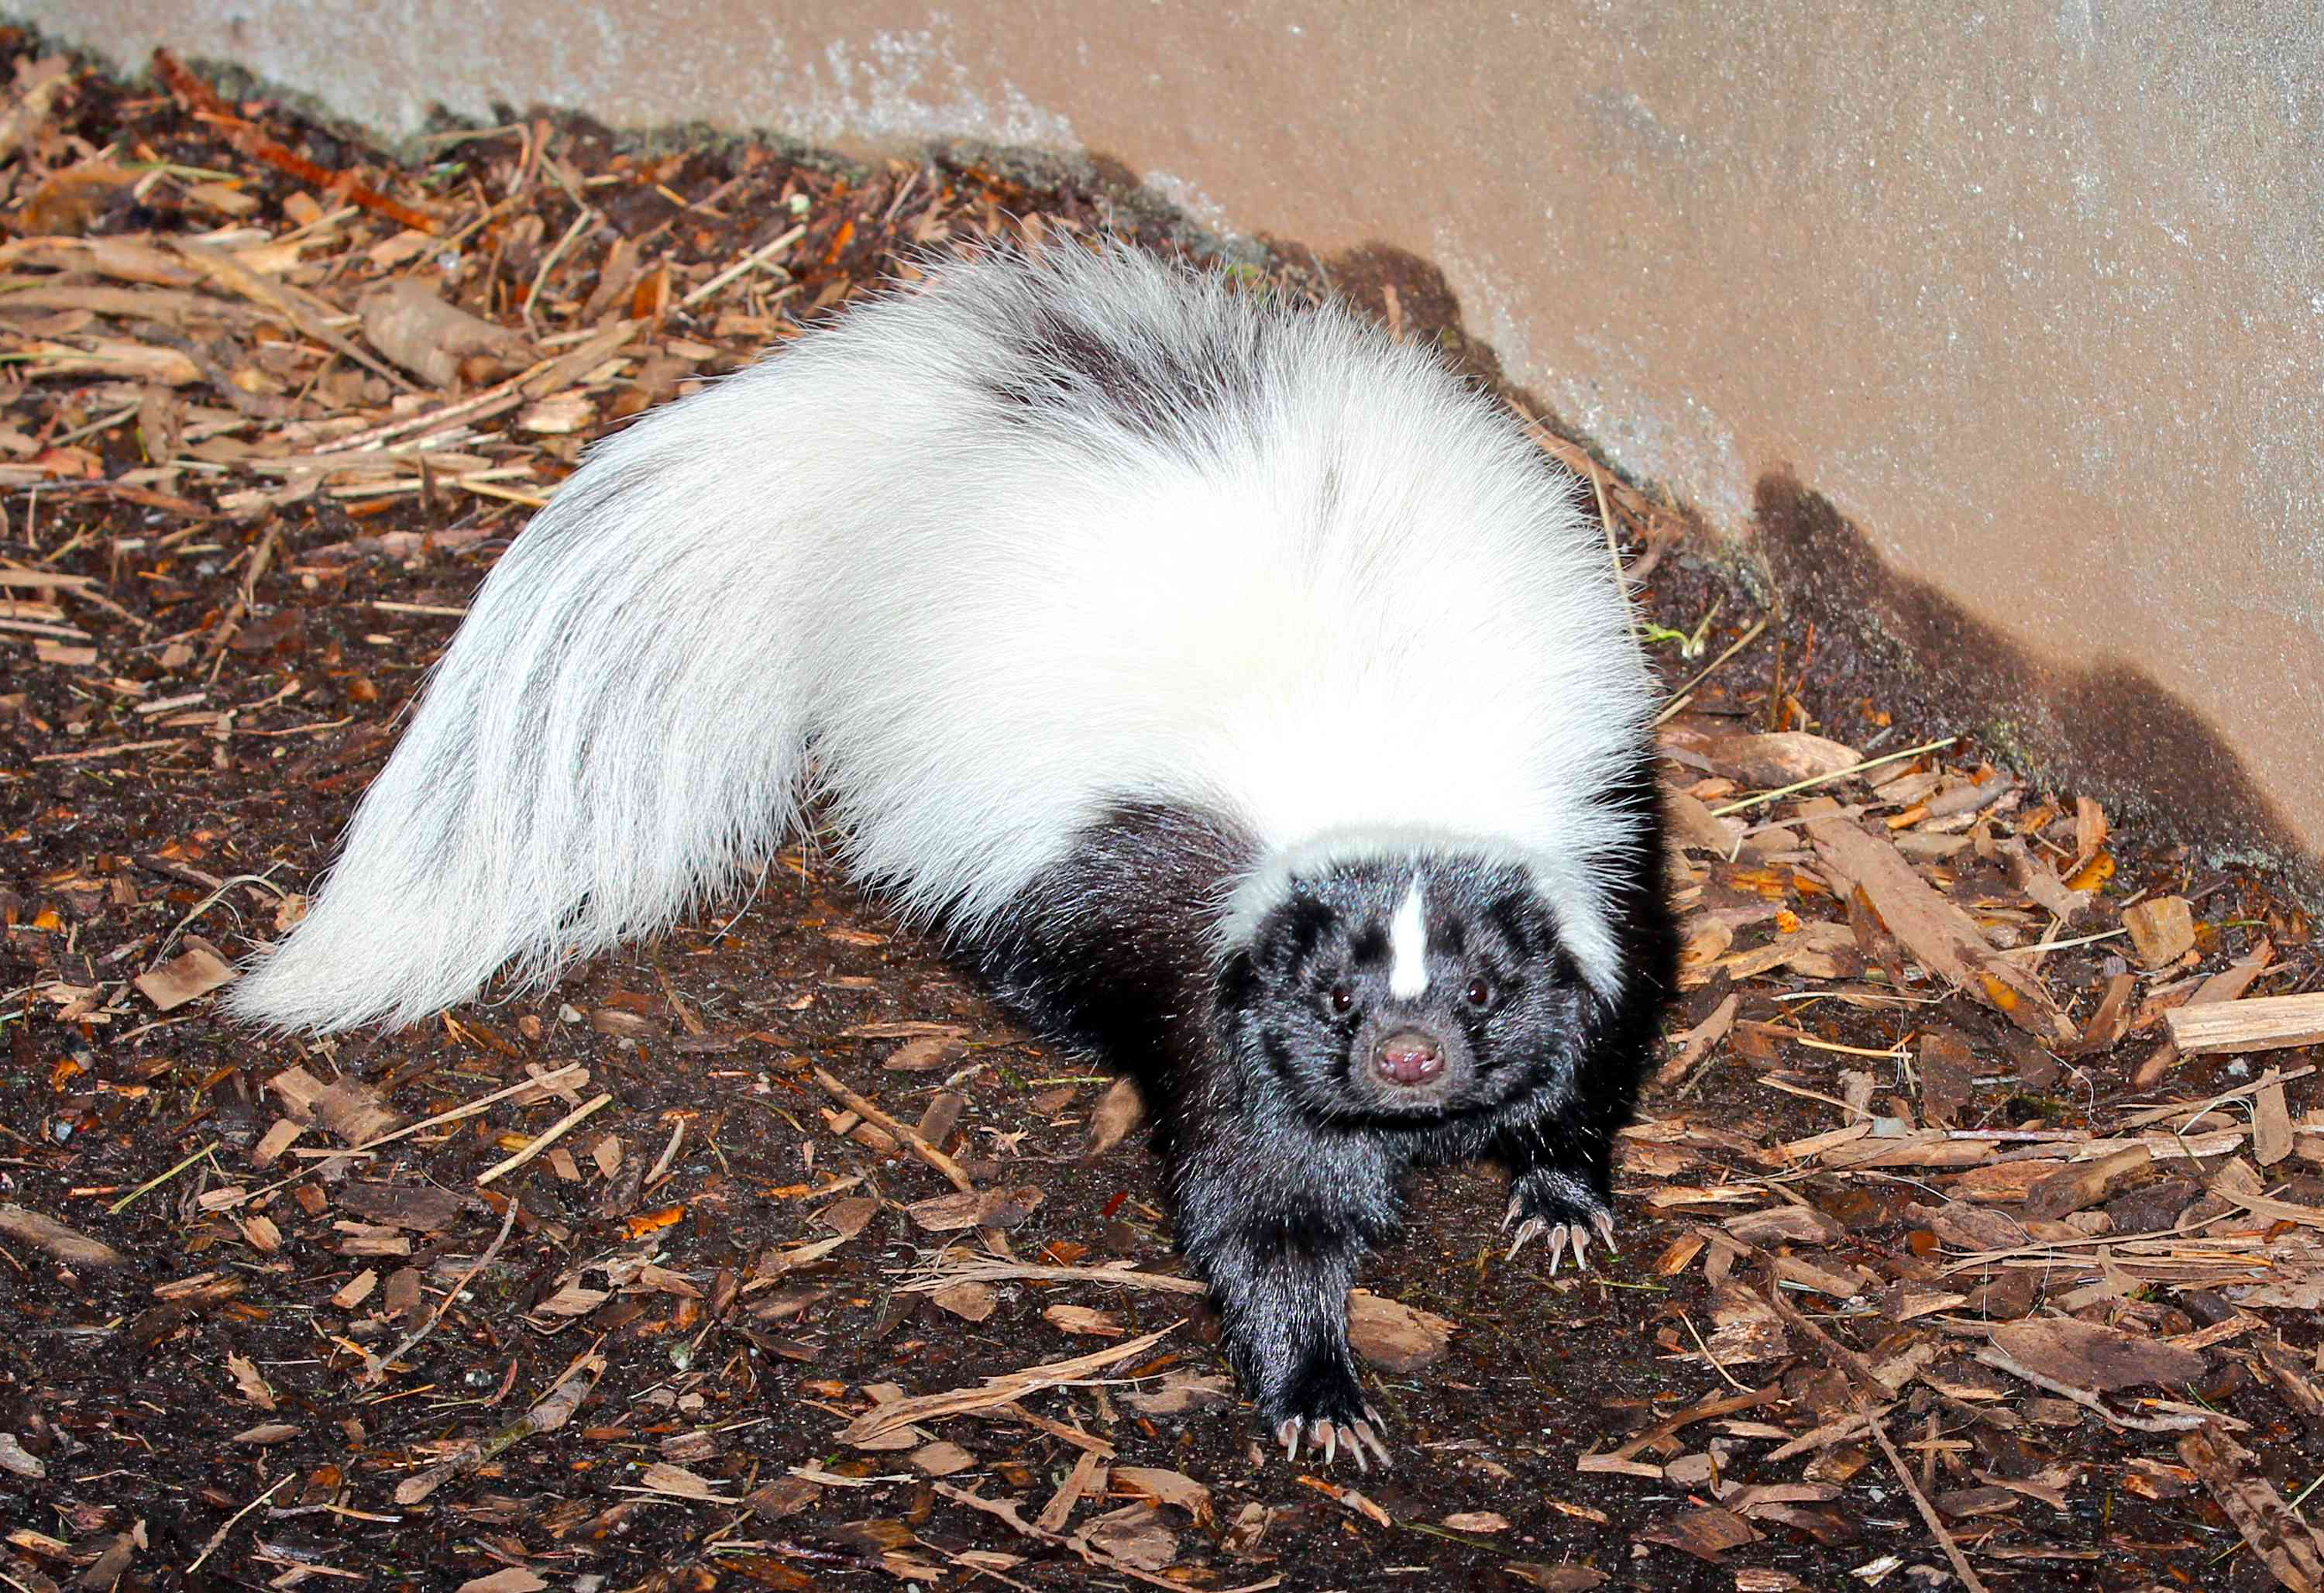 american hog-nosed skunk looks directly into camera with flash